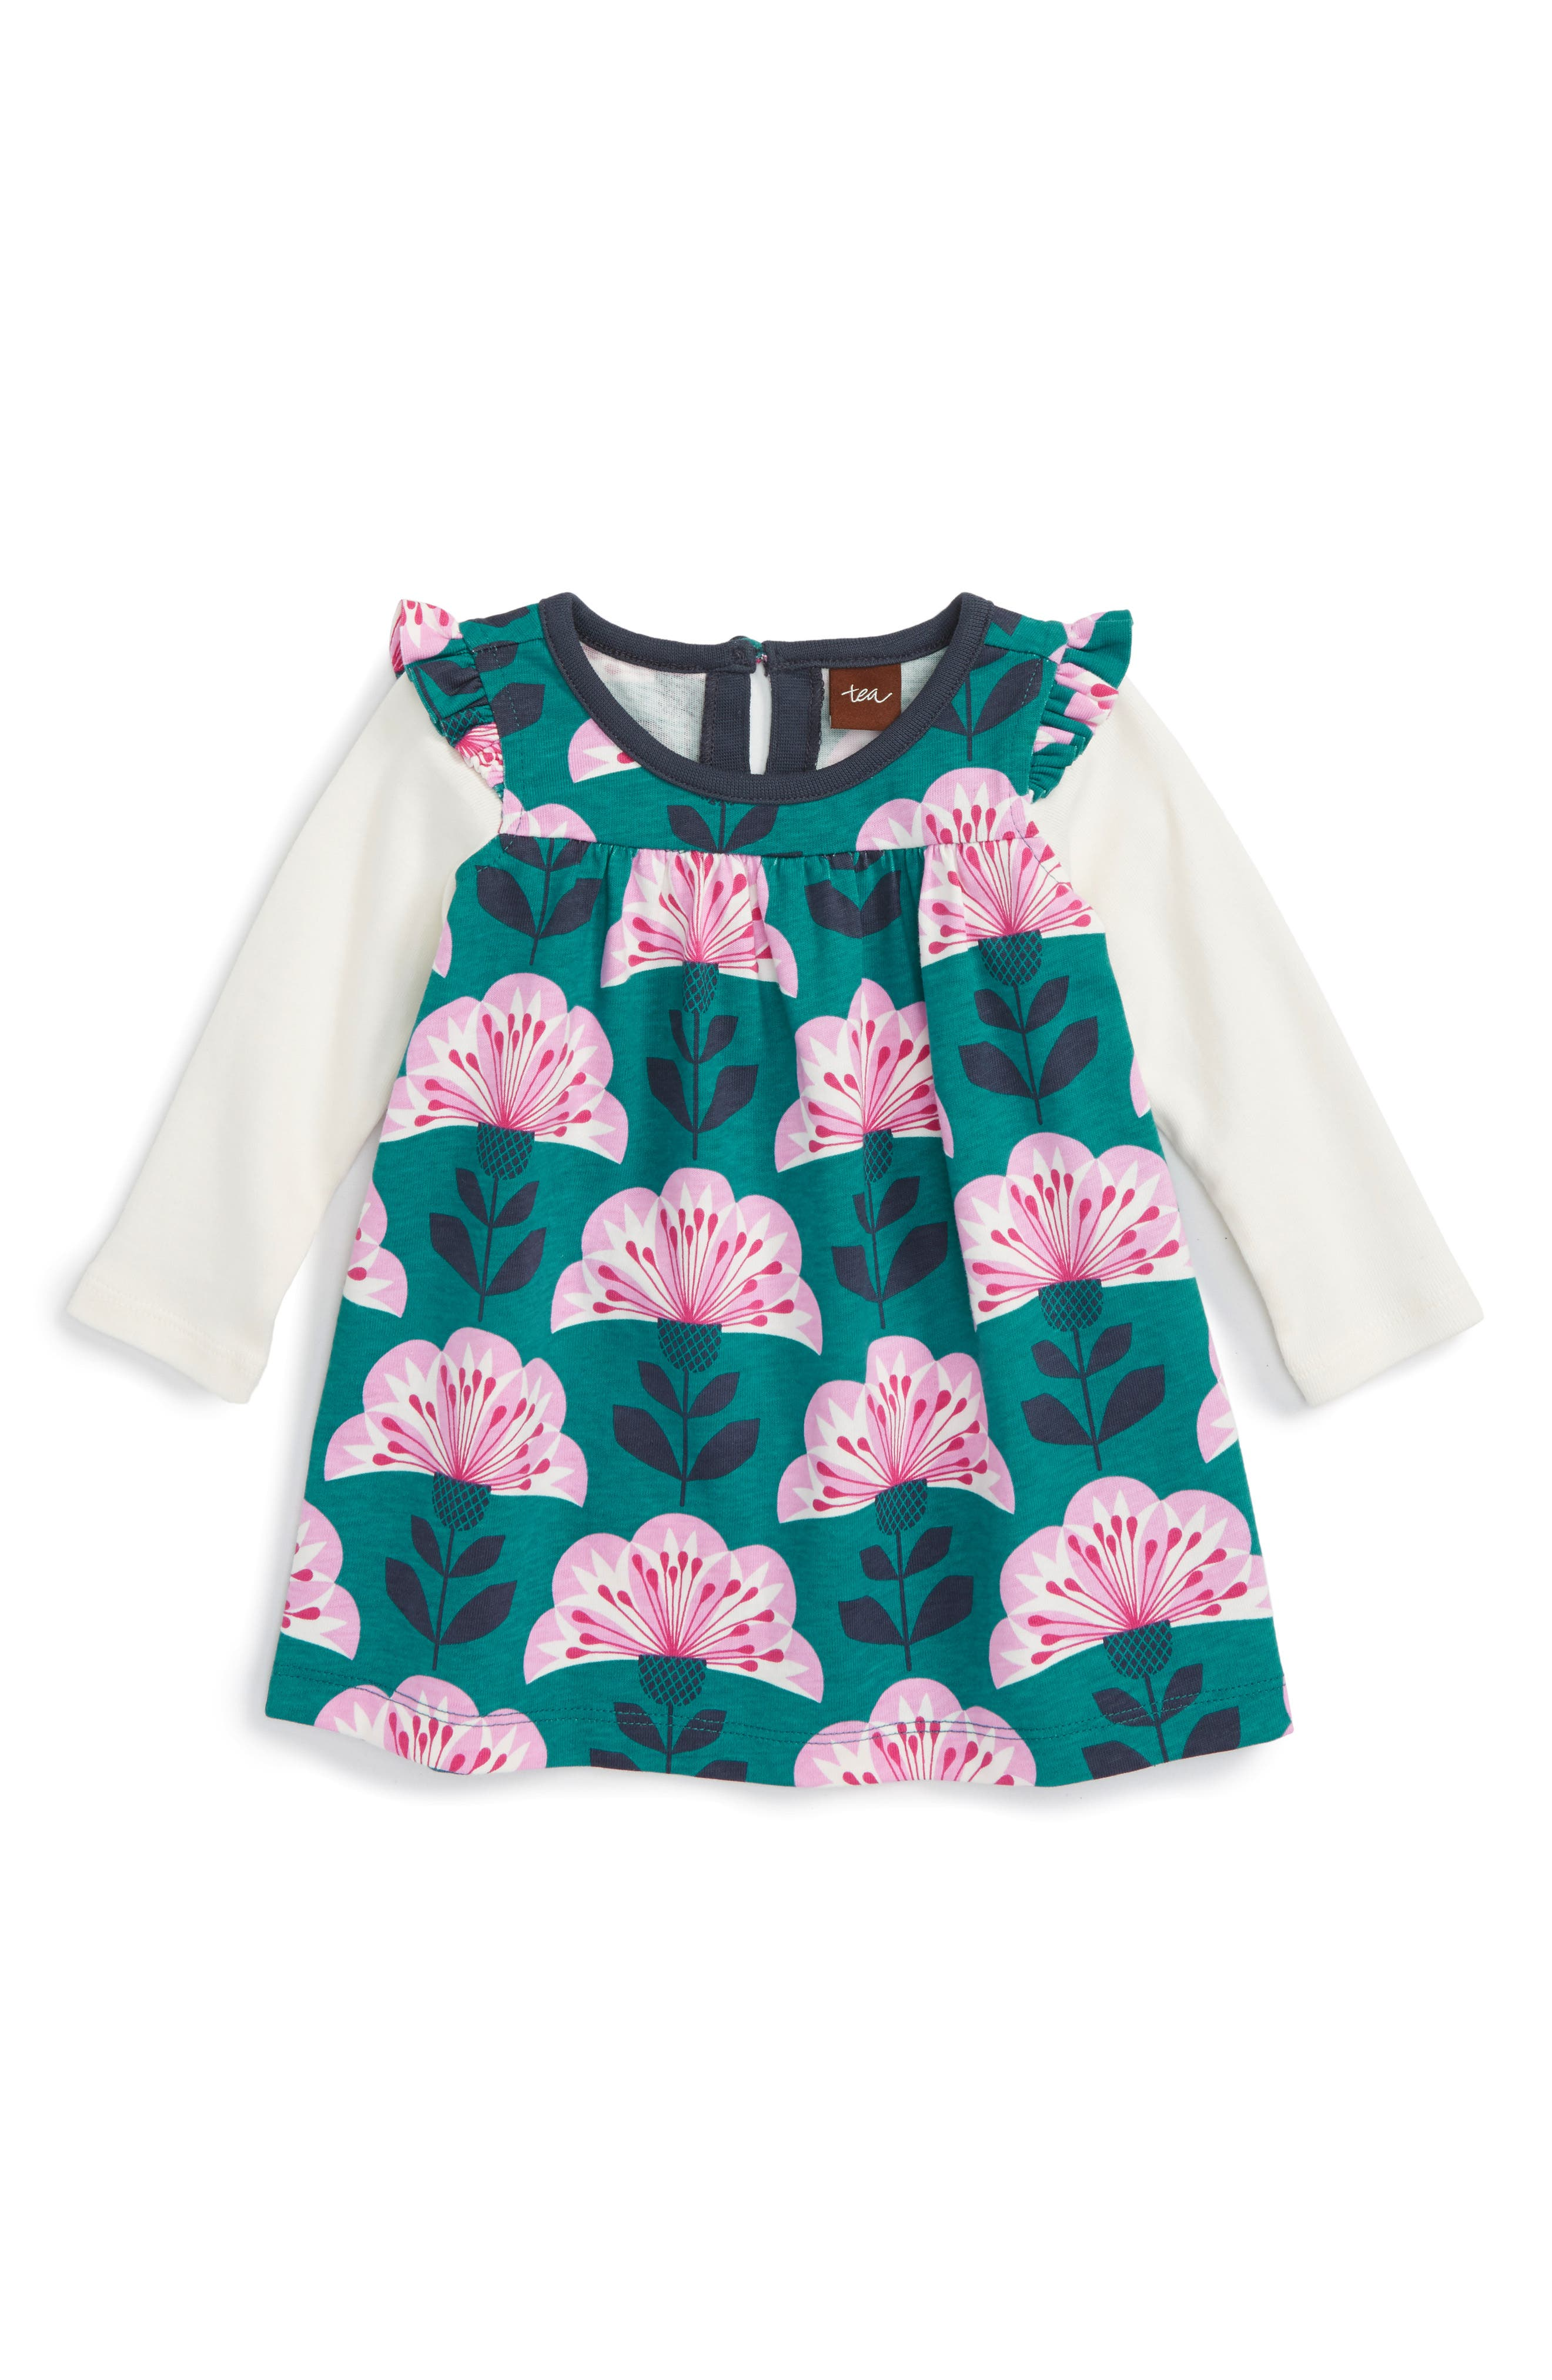 Alternate Image 1 Selected - Tea Collection Double Decker Dress (Baby Girls)